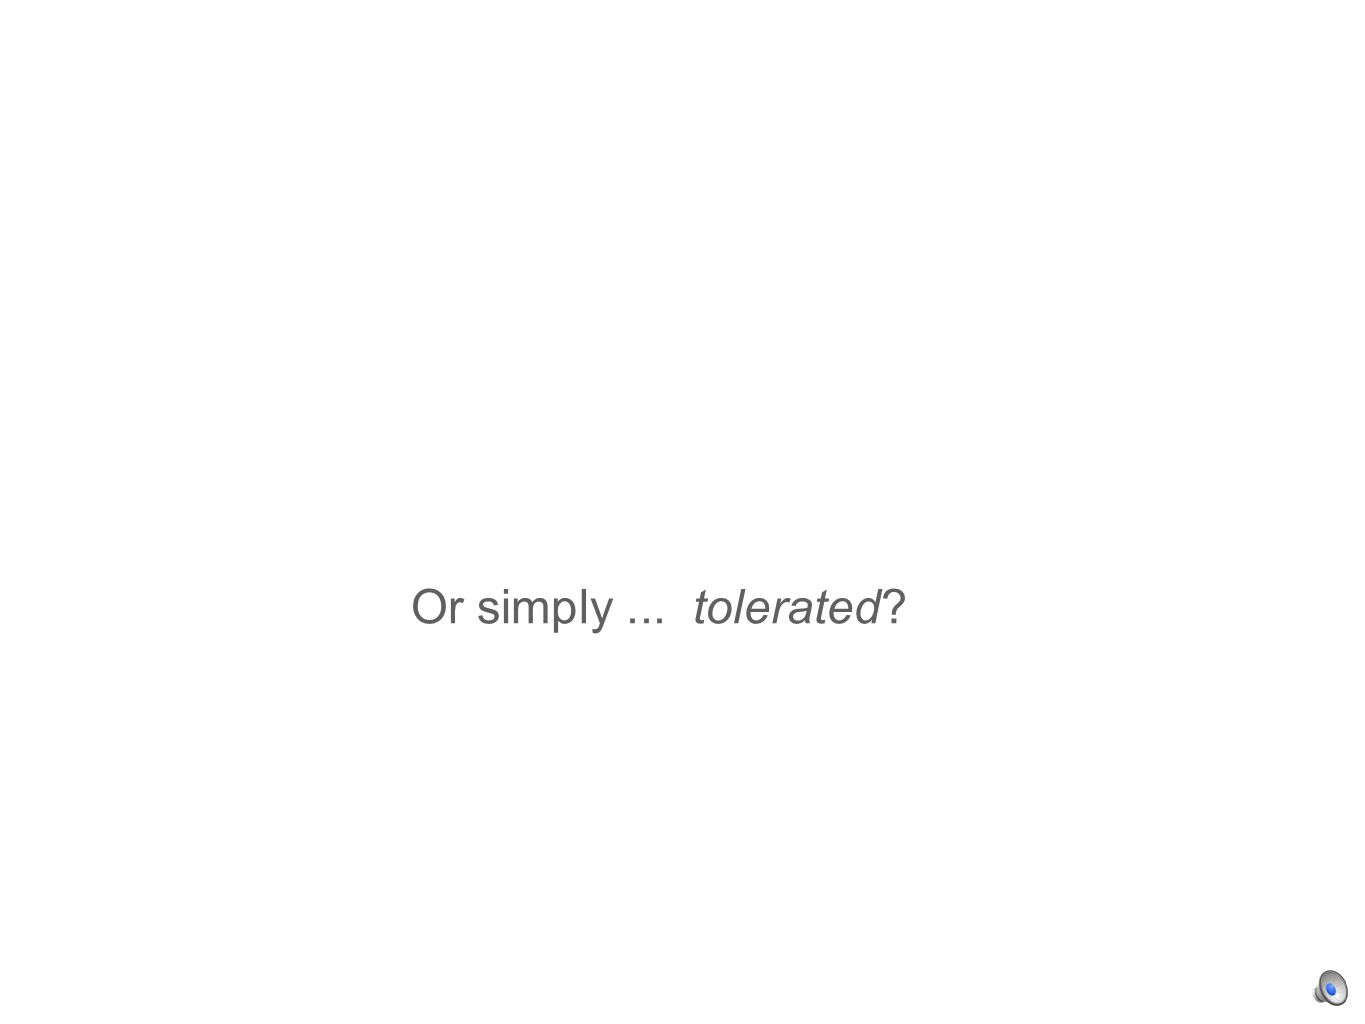 Or simply... tolerated